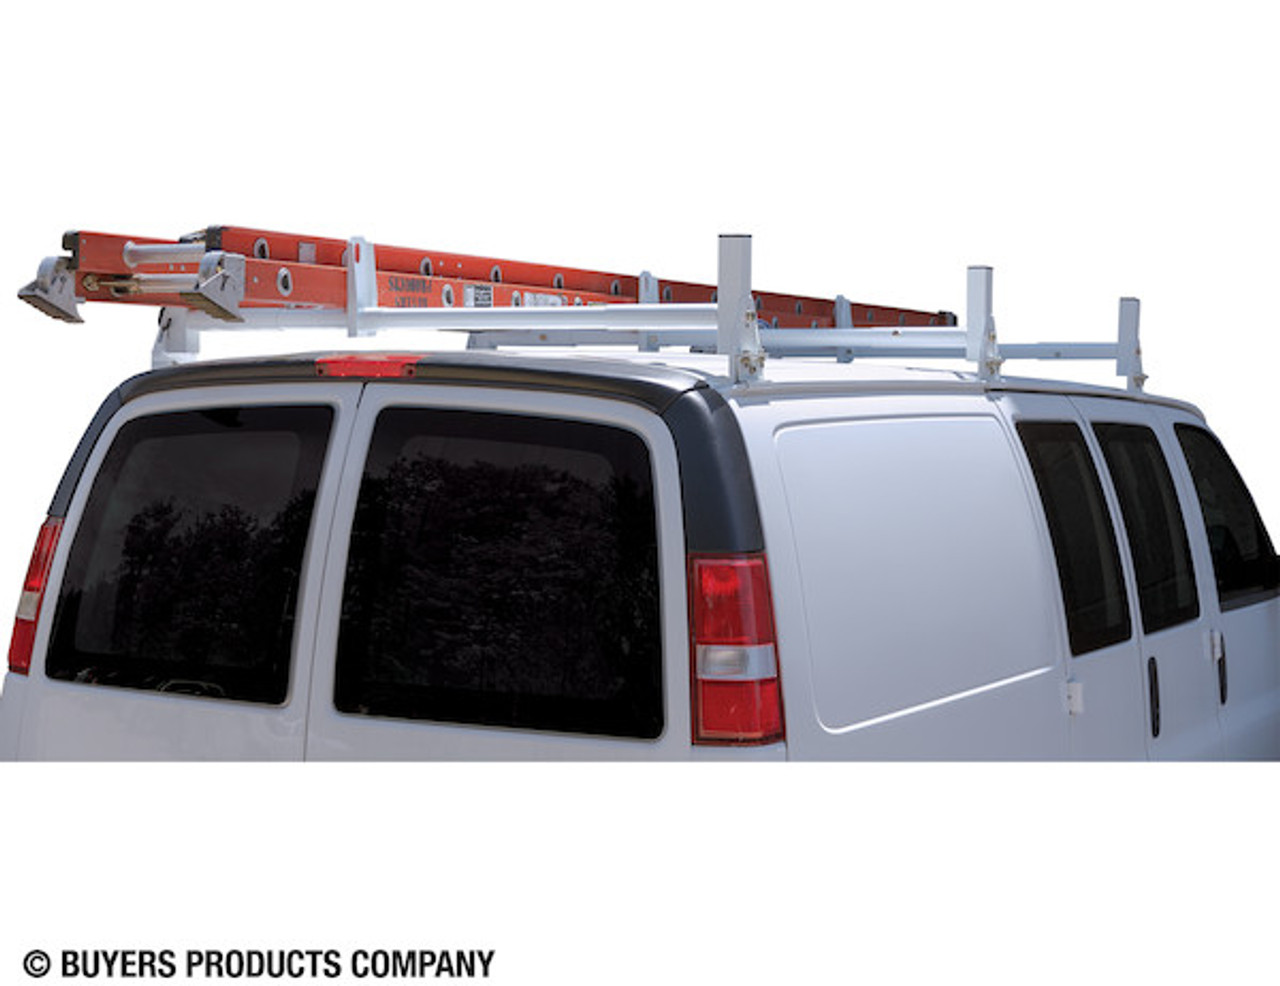 BUYERS 1501310 White Van Ladder Rack Set - 2 Bars And 2 Clamps Picture # 3